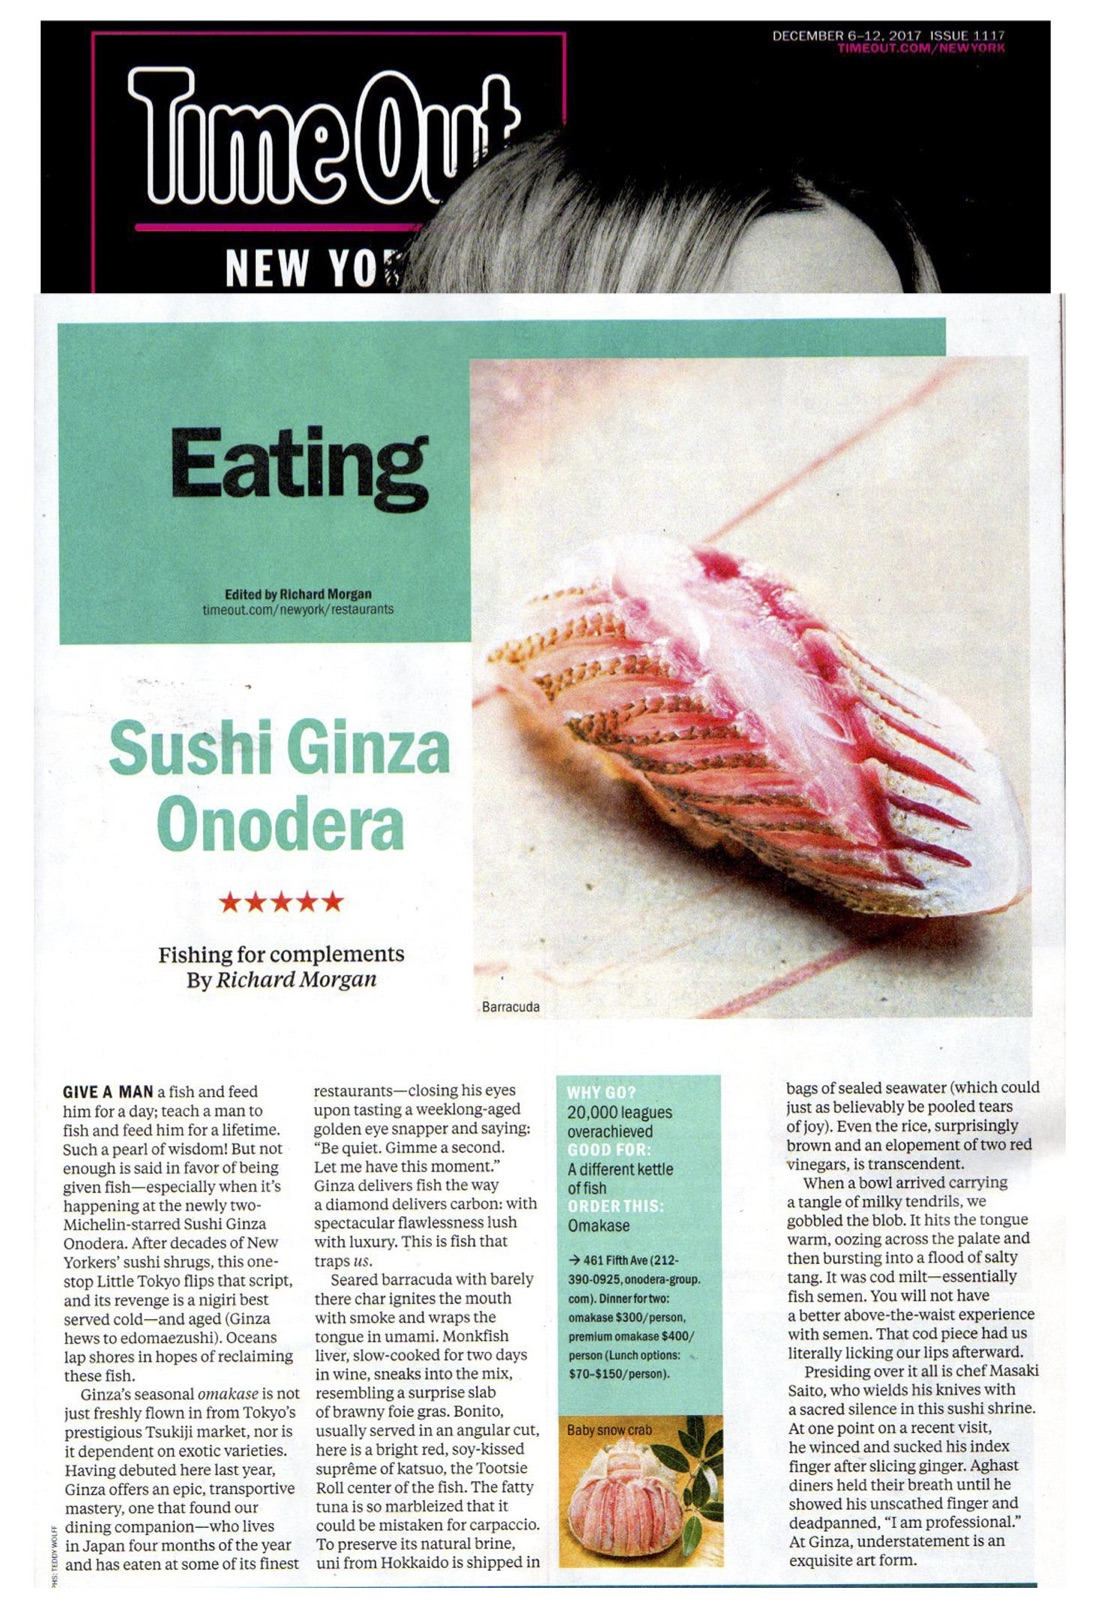 Time Out NY review page